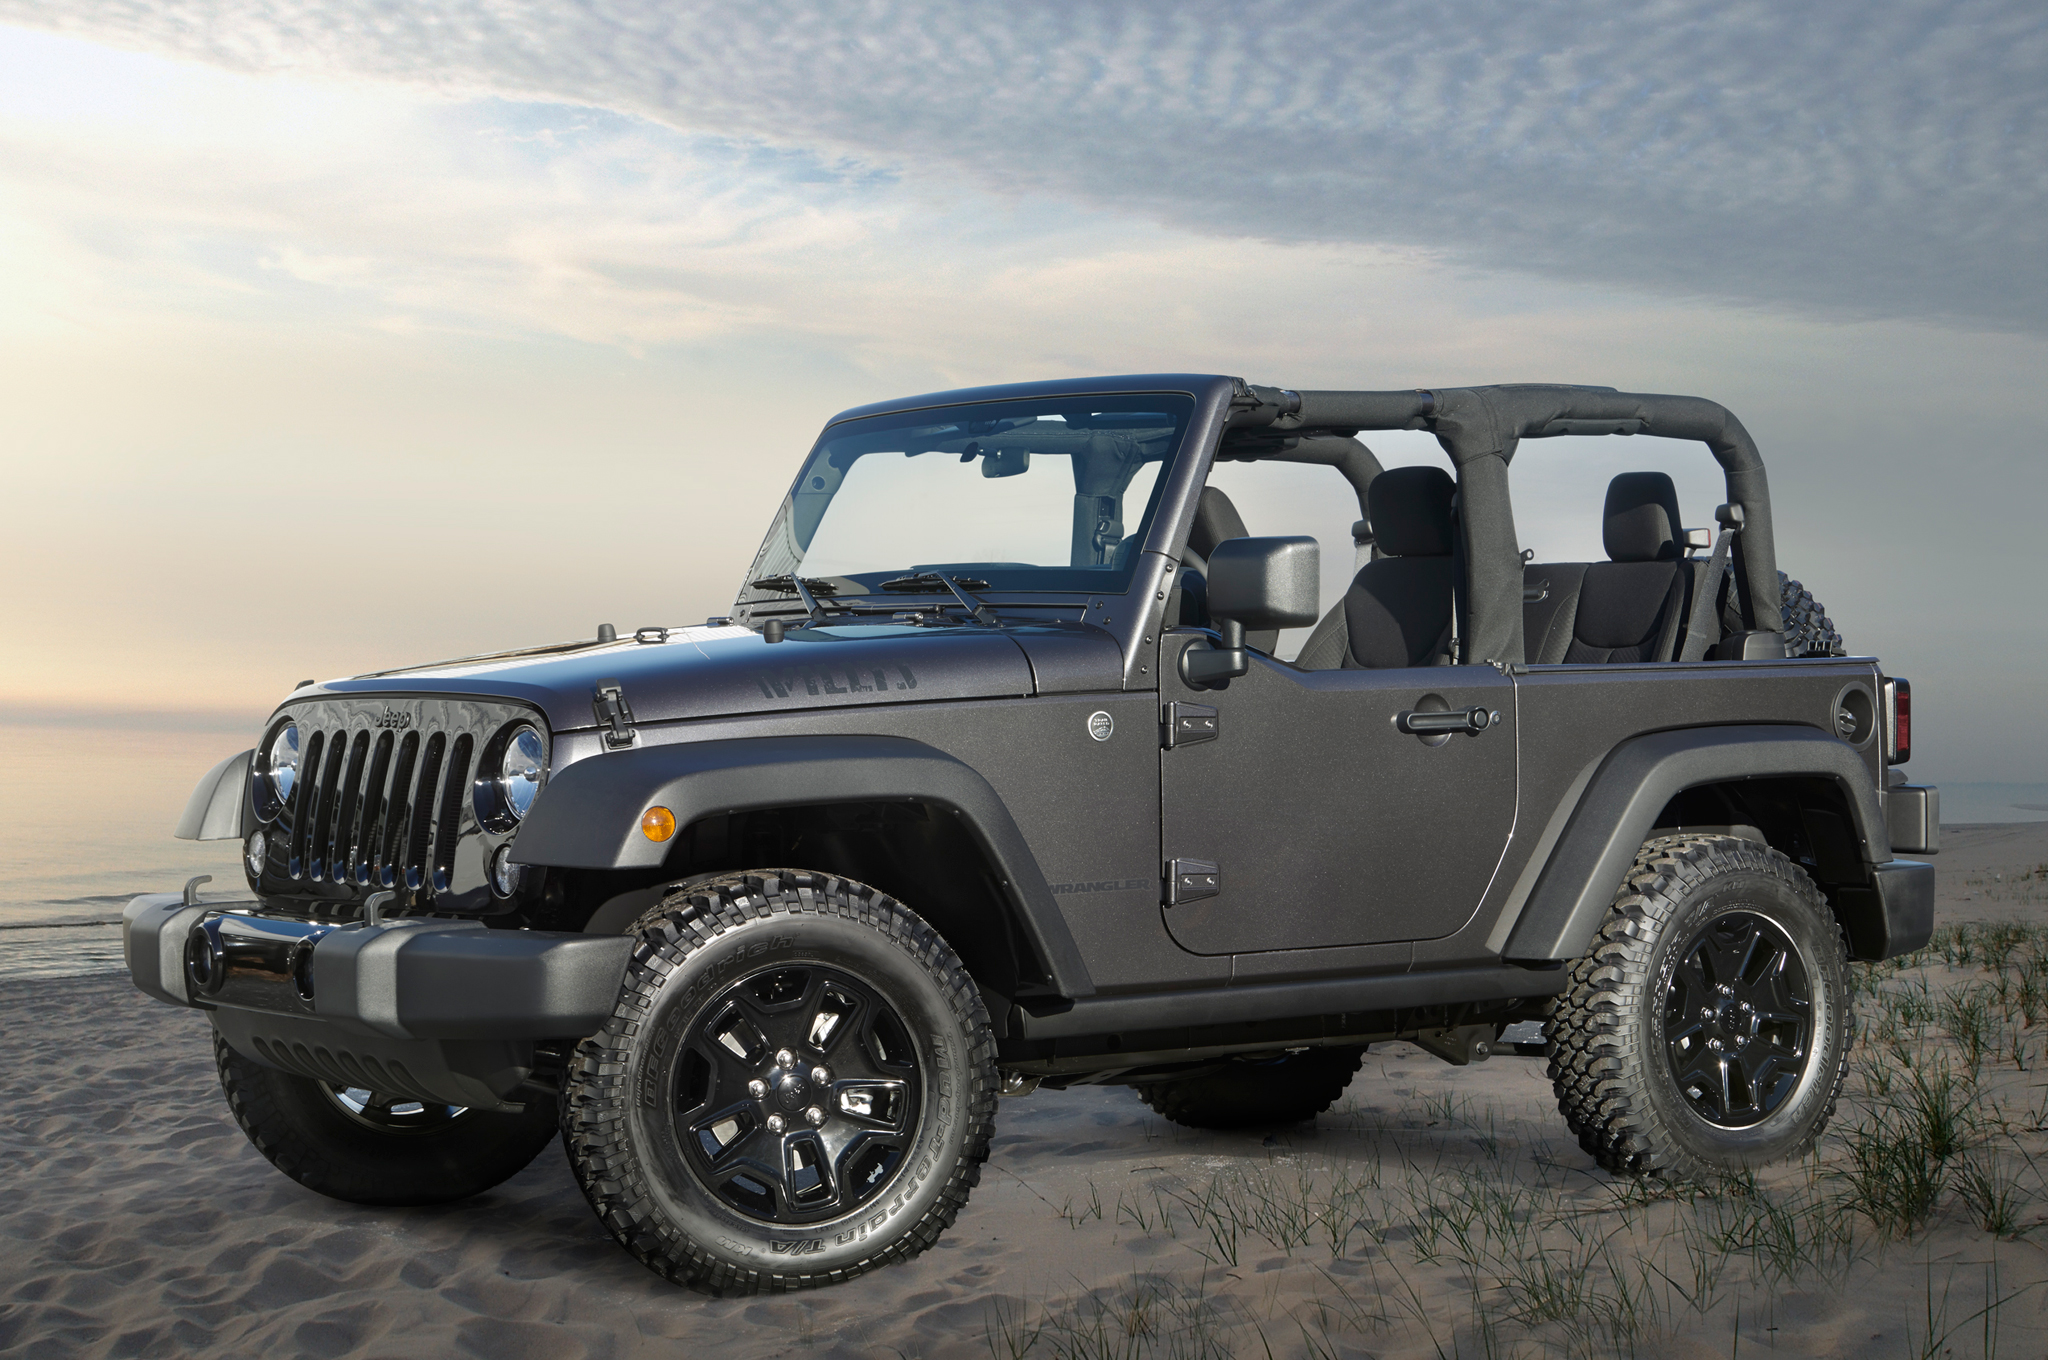 wrangler floormats grab door and mopar weather the auto la jeep all round doorsill cues sport c styling accessories handles to of out jl incorporate gallery at new guards modified show